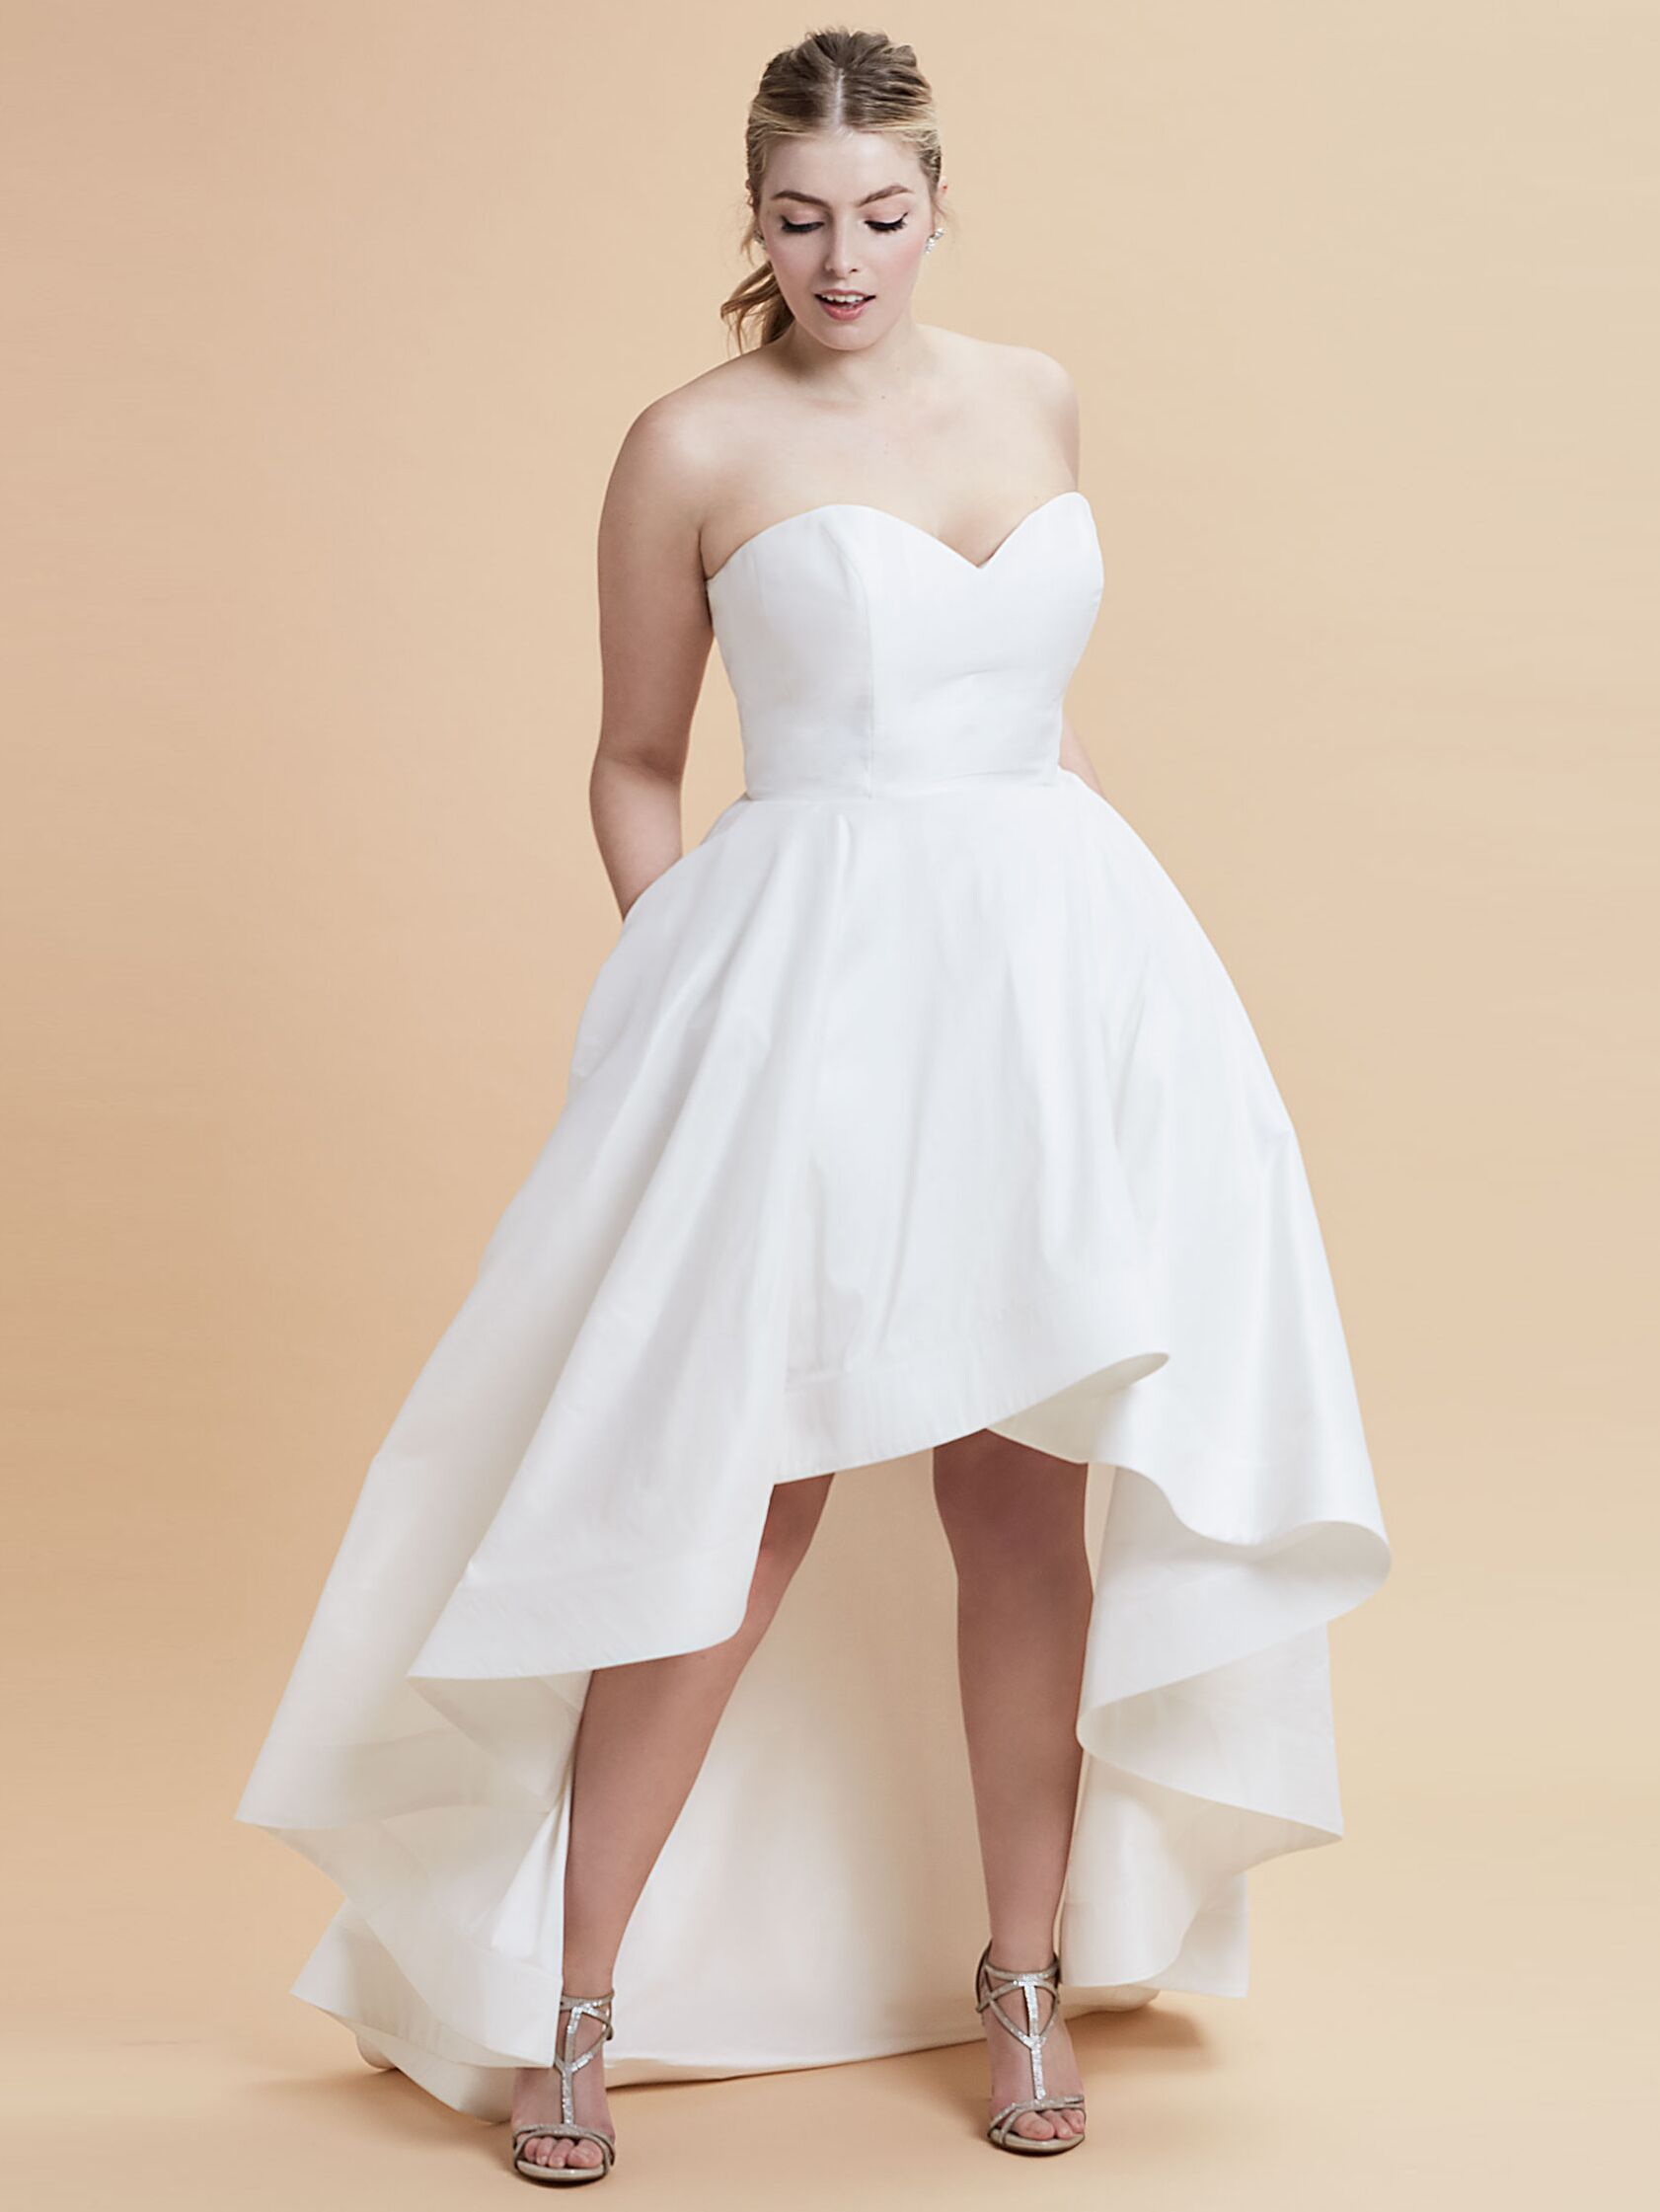 Ideas & Advice by The Knot in 2020 Wedding dresses high